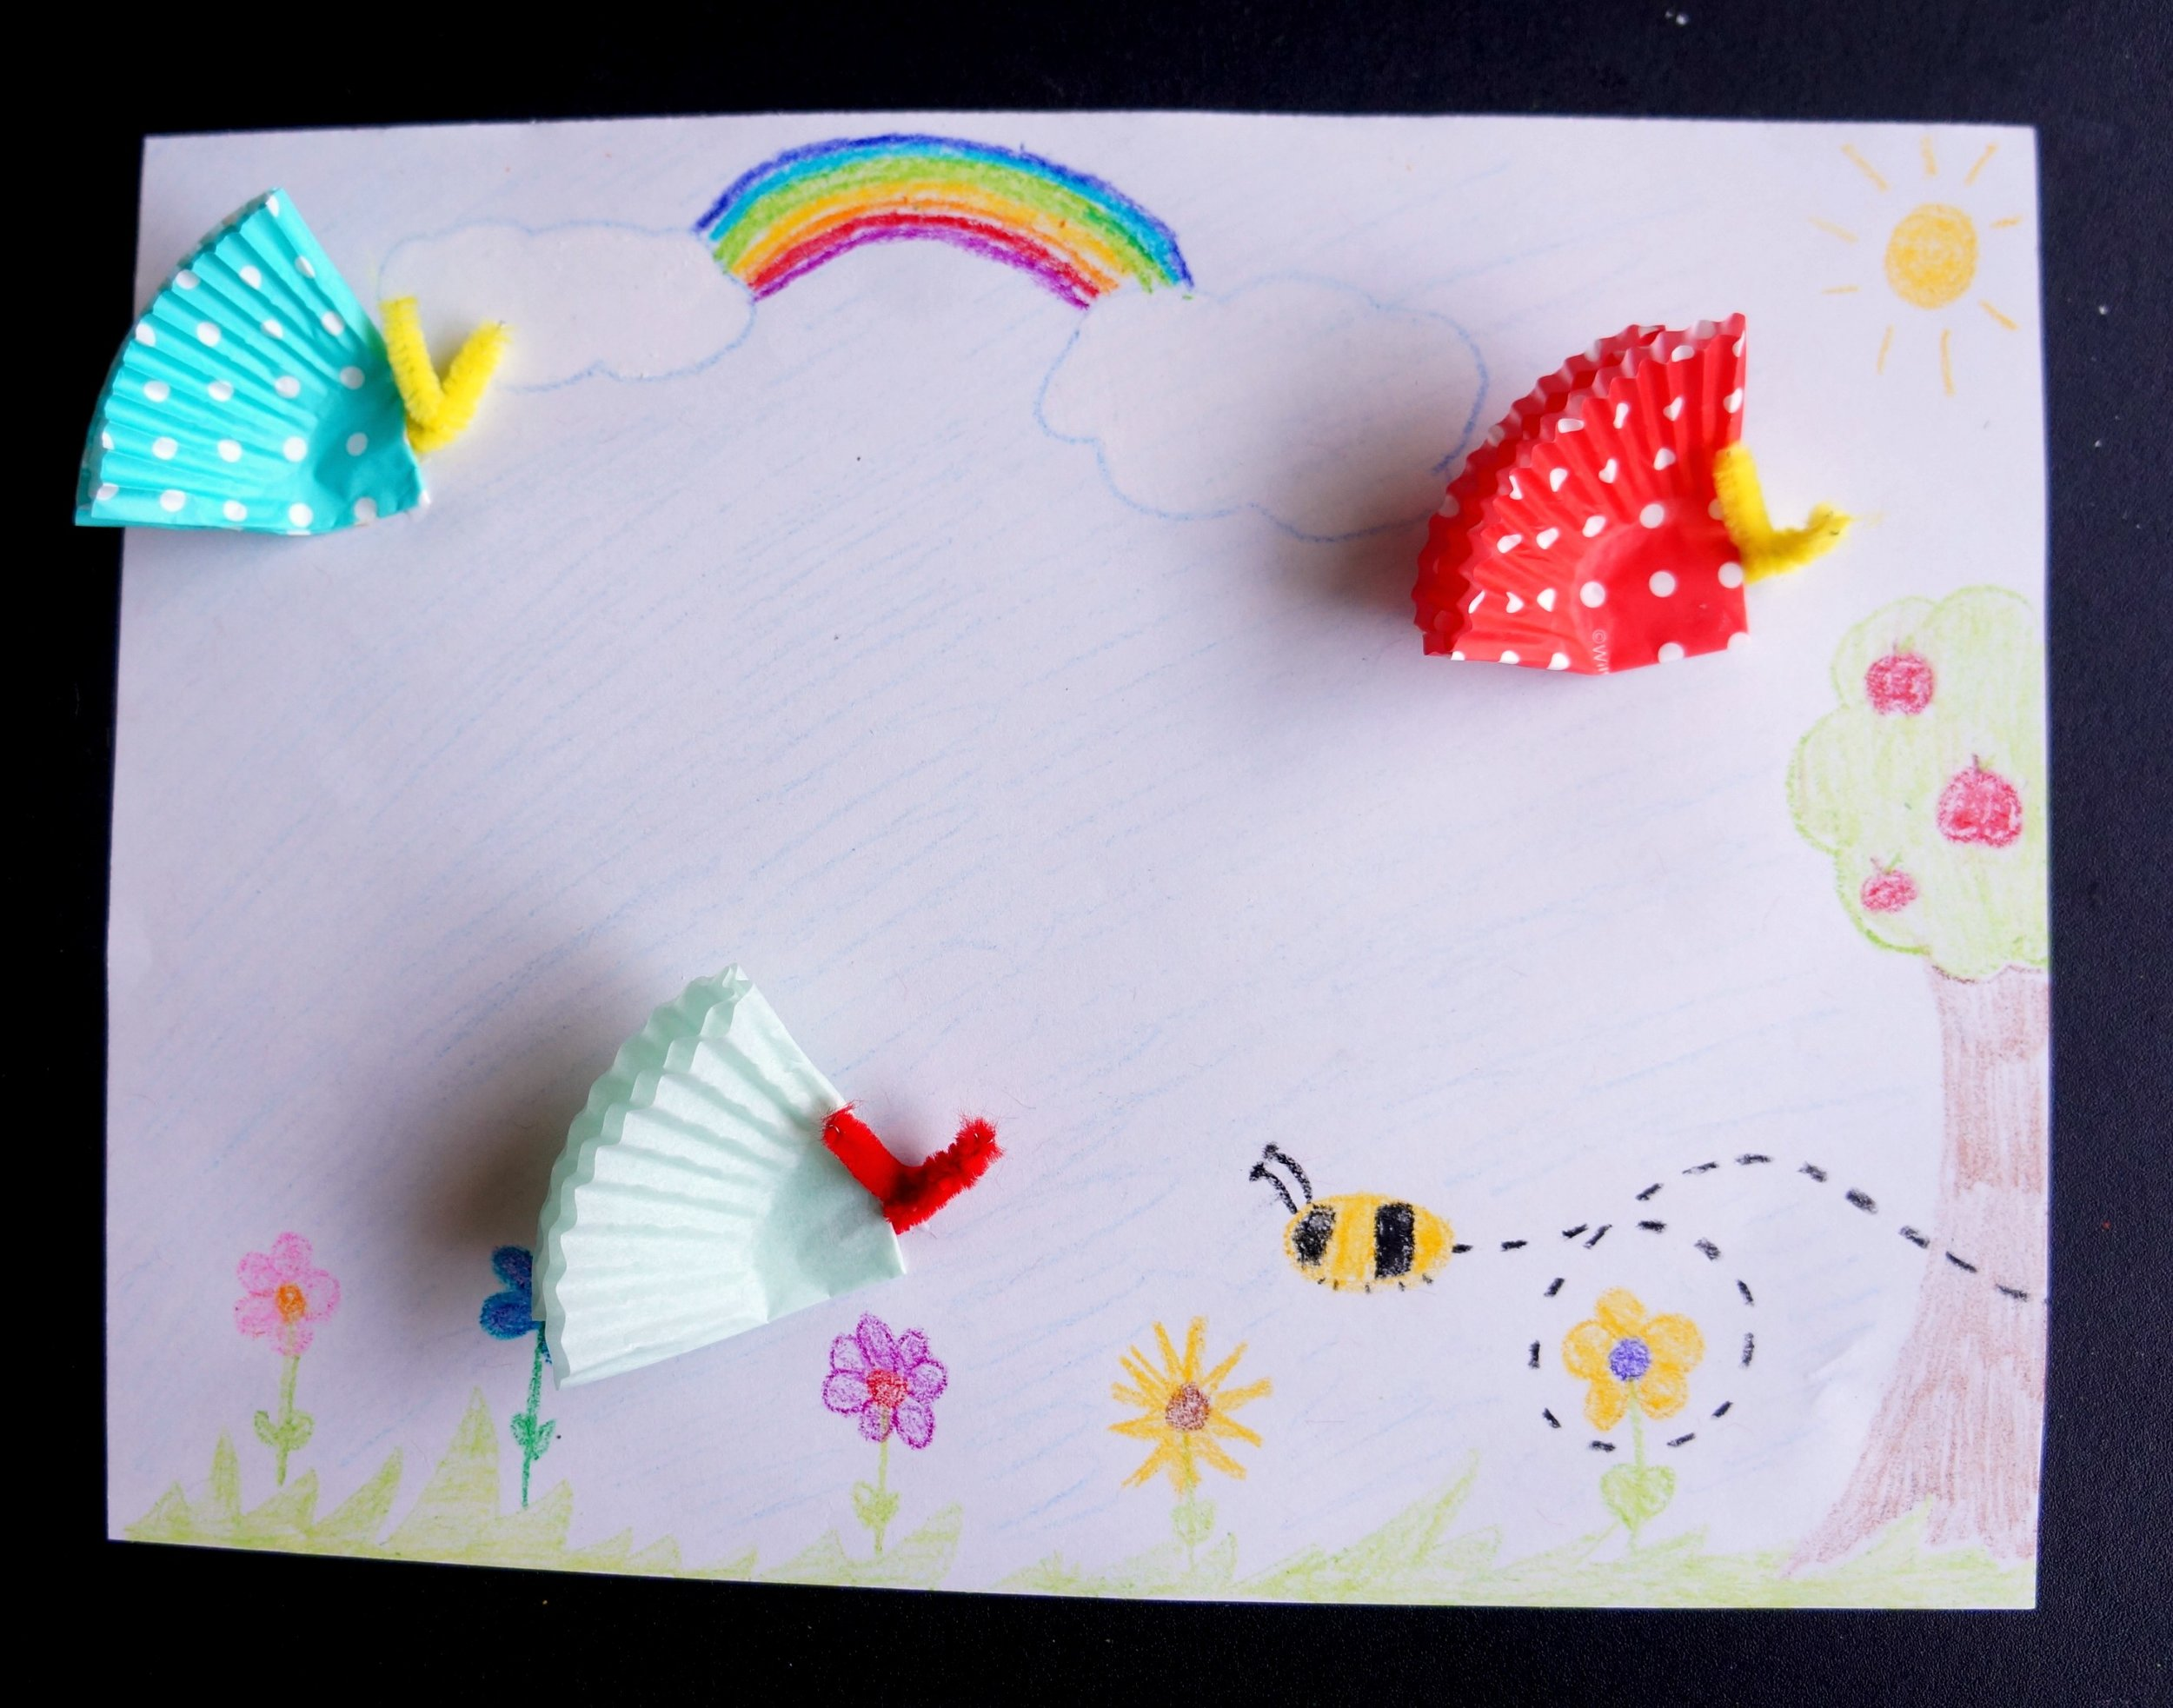 Cupcake Liner Butterfly Scenes, Cupcake liner butterflies, DIY butterflies, Butterflies with cupcake liners: garden butterflies , Cupcake liner craft, All About Hope projects